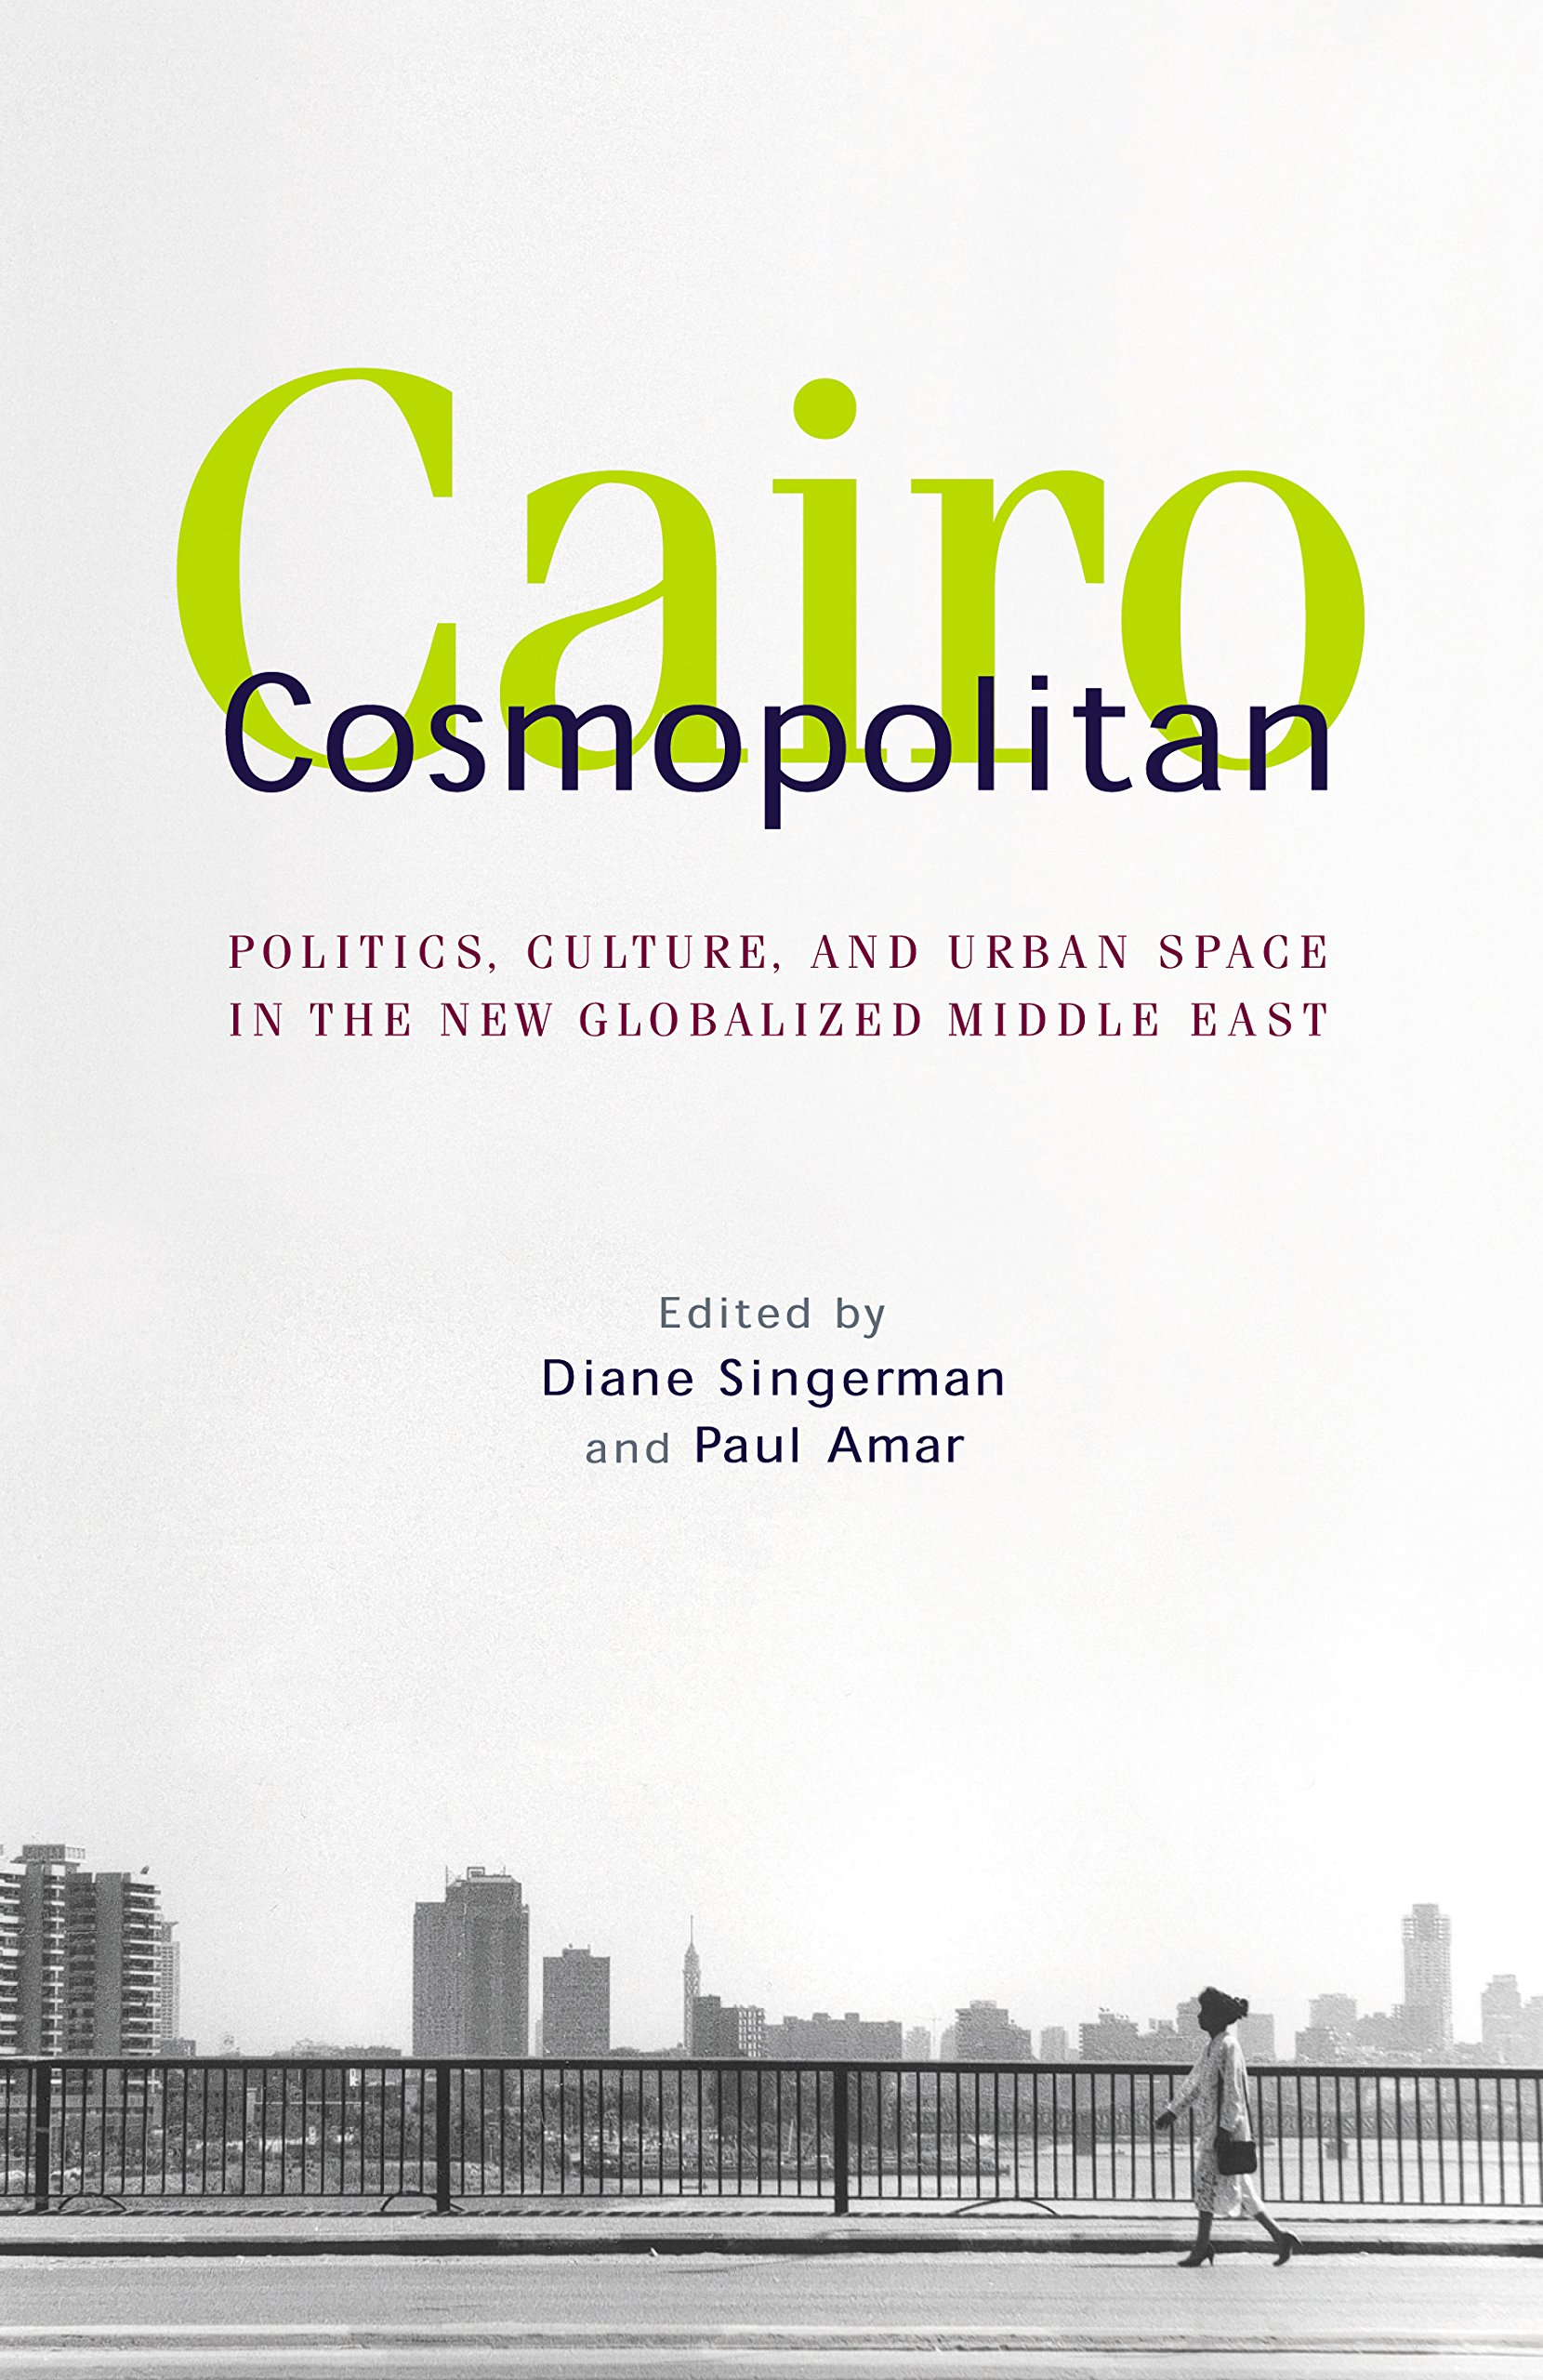 Download Cairo Cosmopolitan: Politics, Culture, and Urban Space in the New Middle East PDF